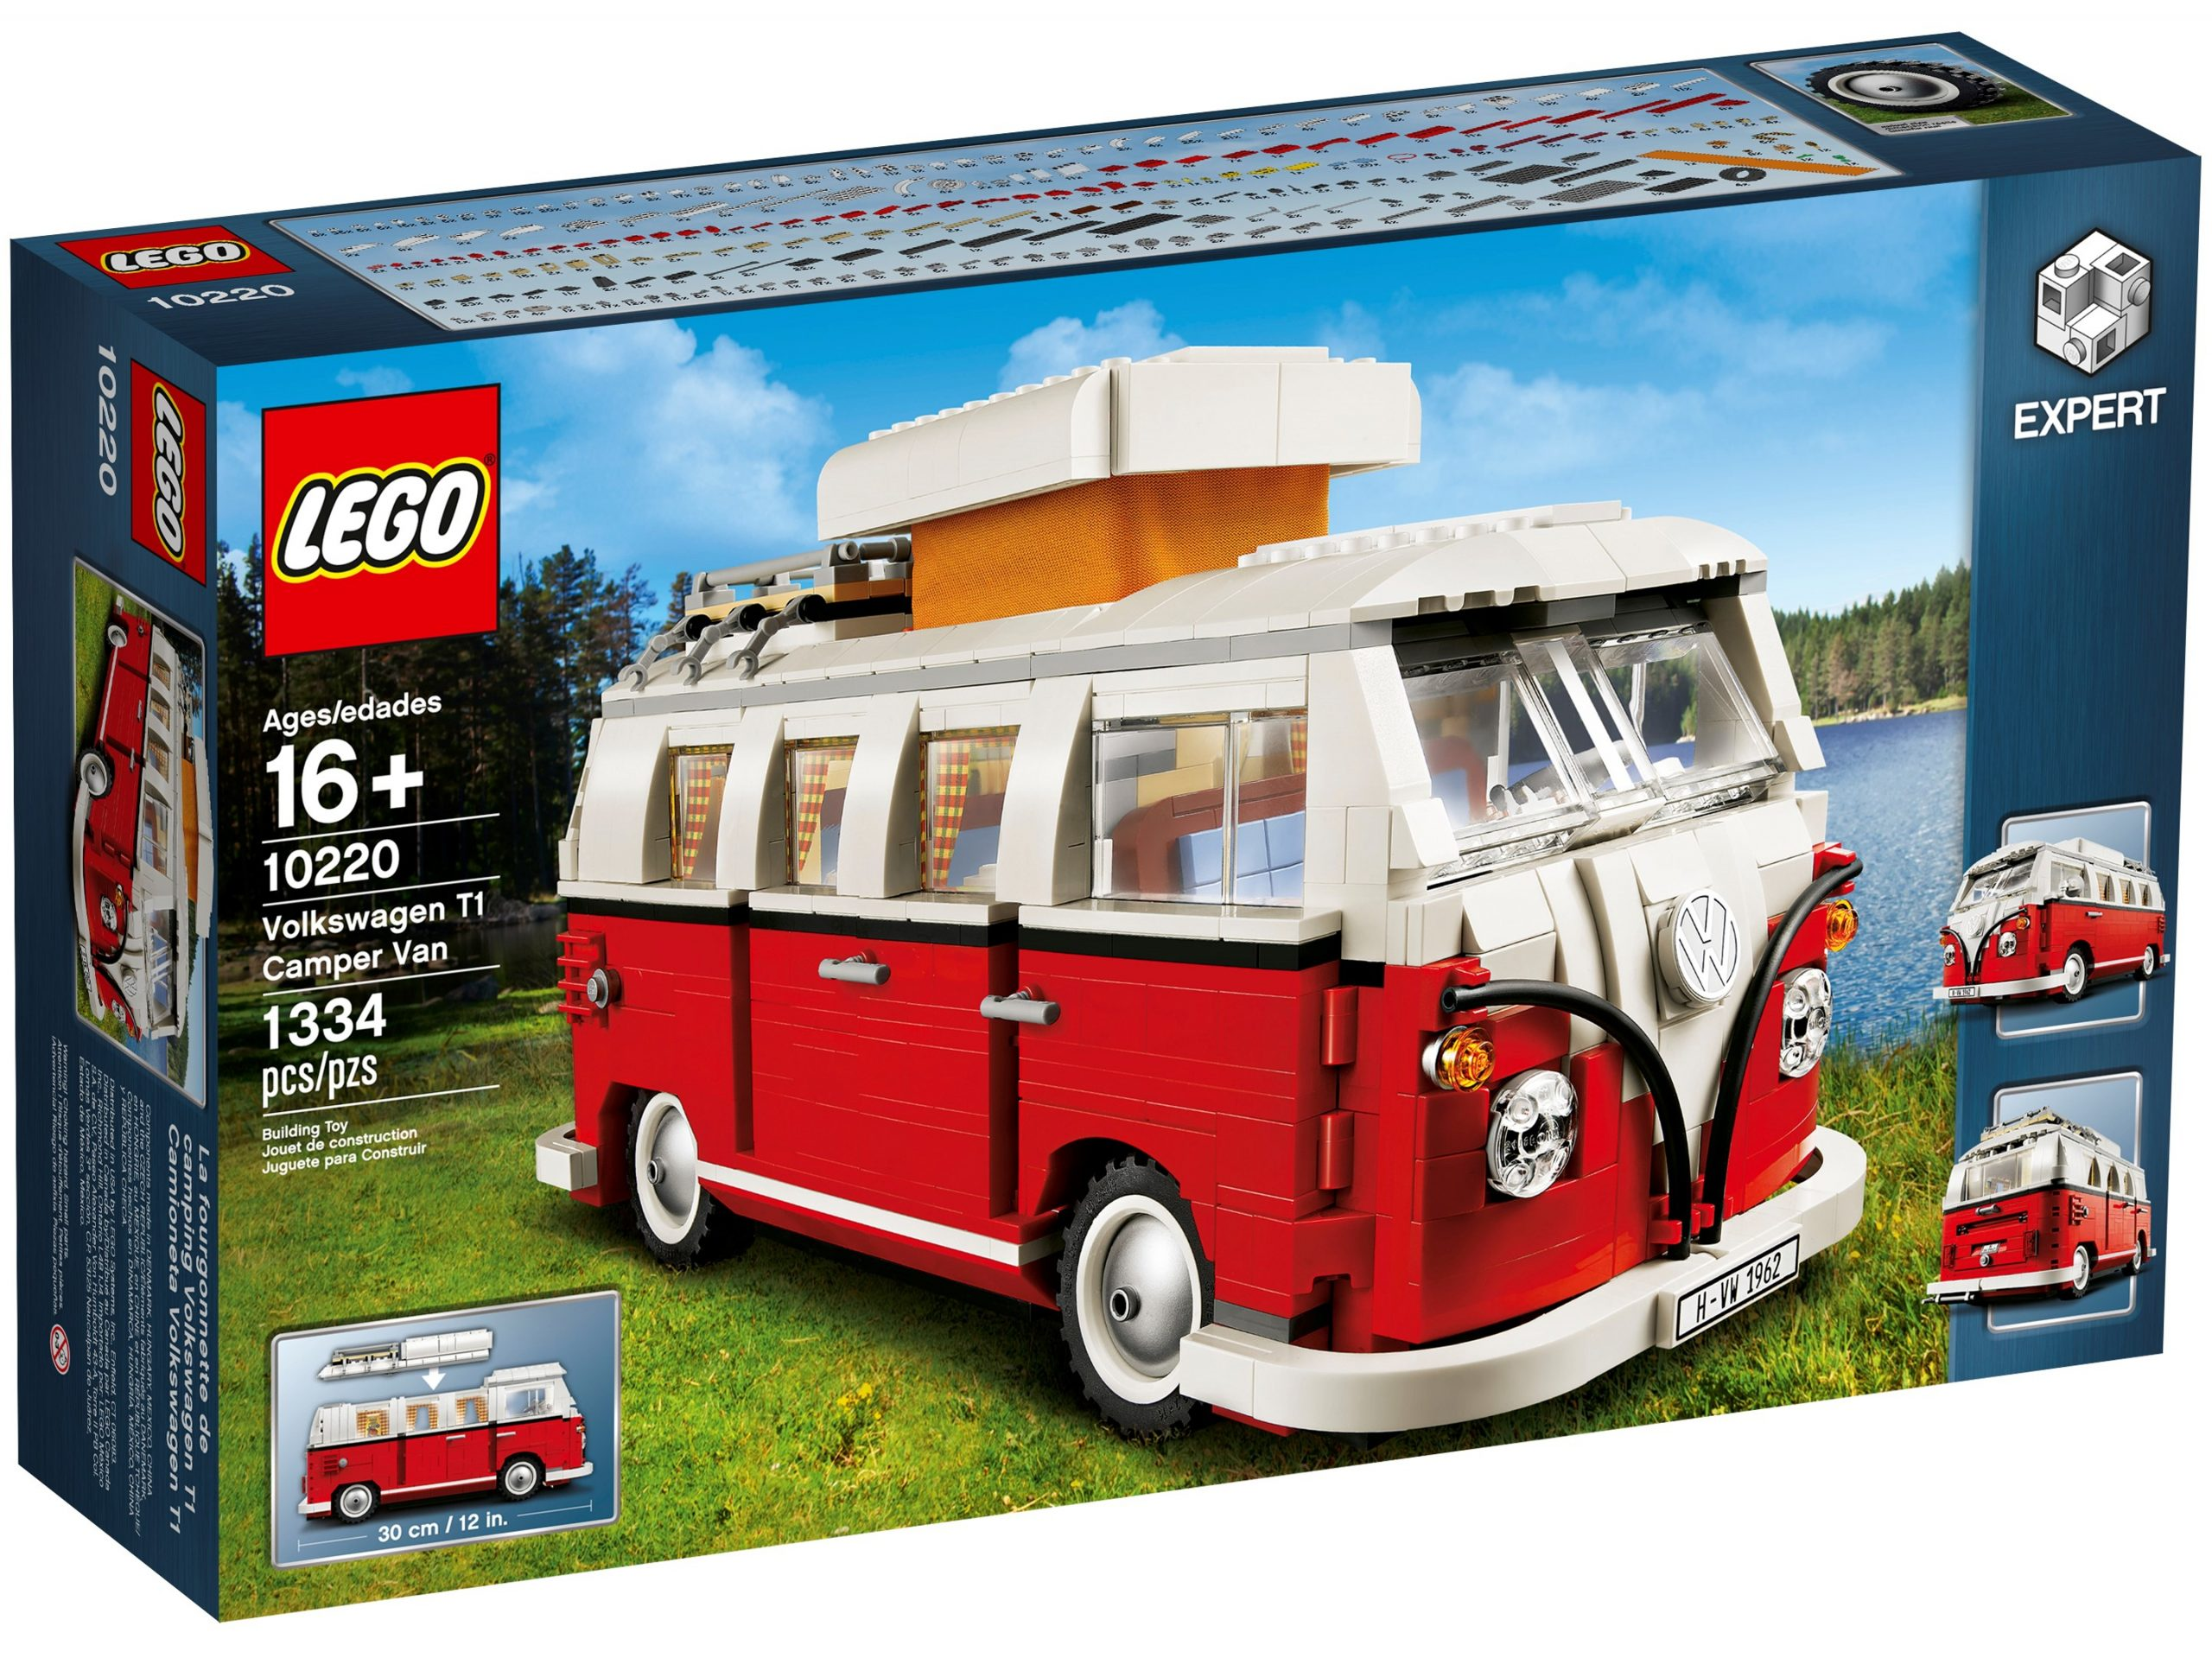 lego 10220 le camping car volkswagen t1 scaled